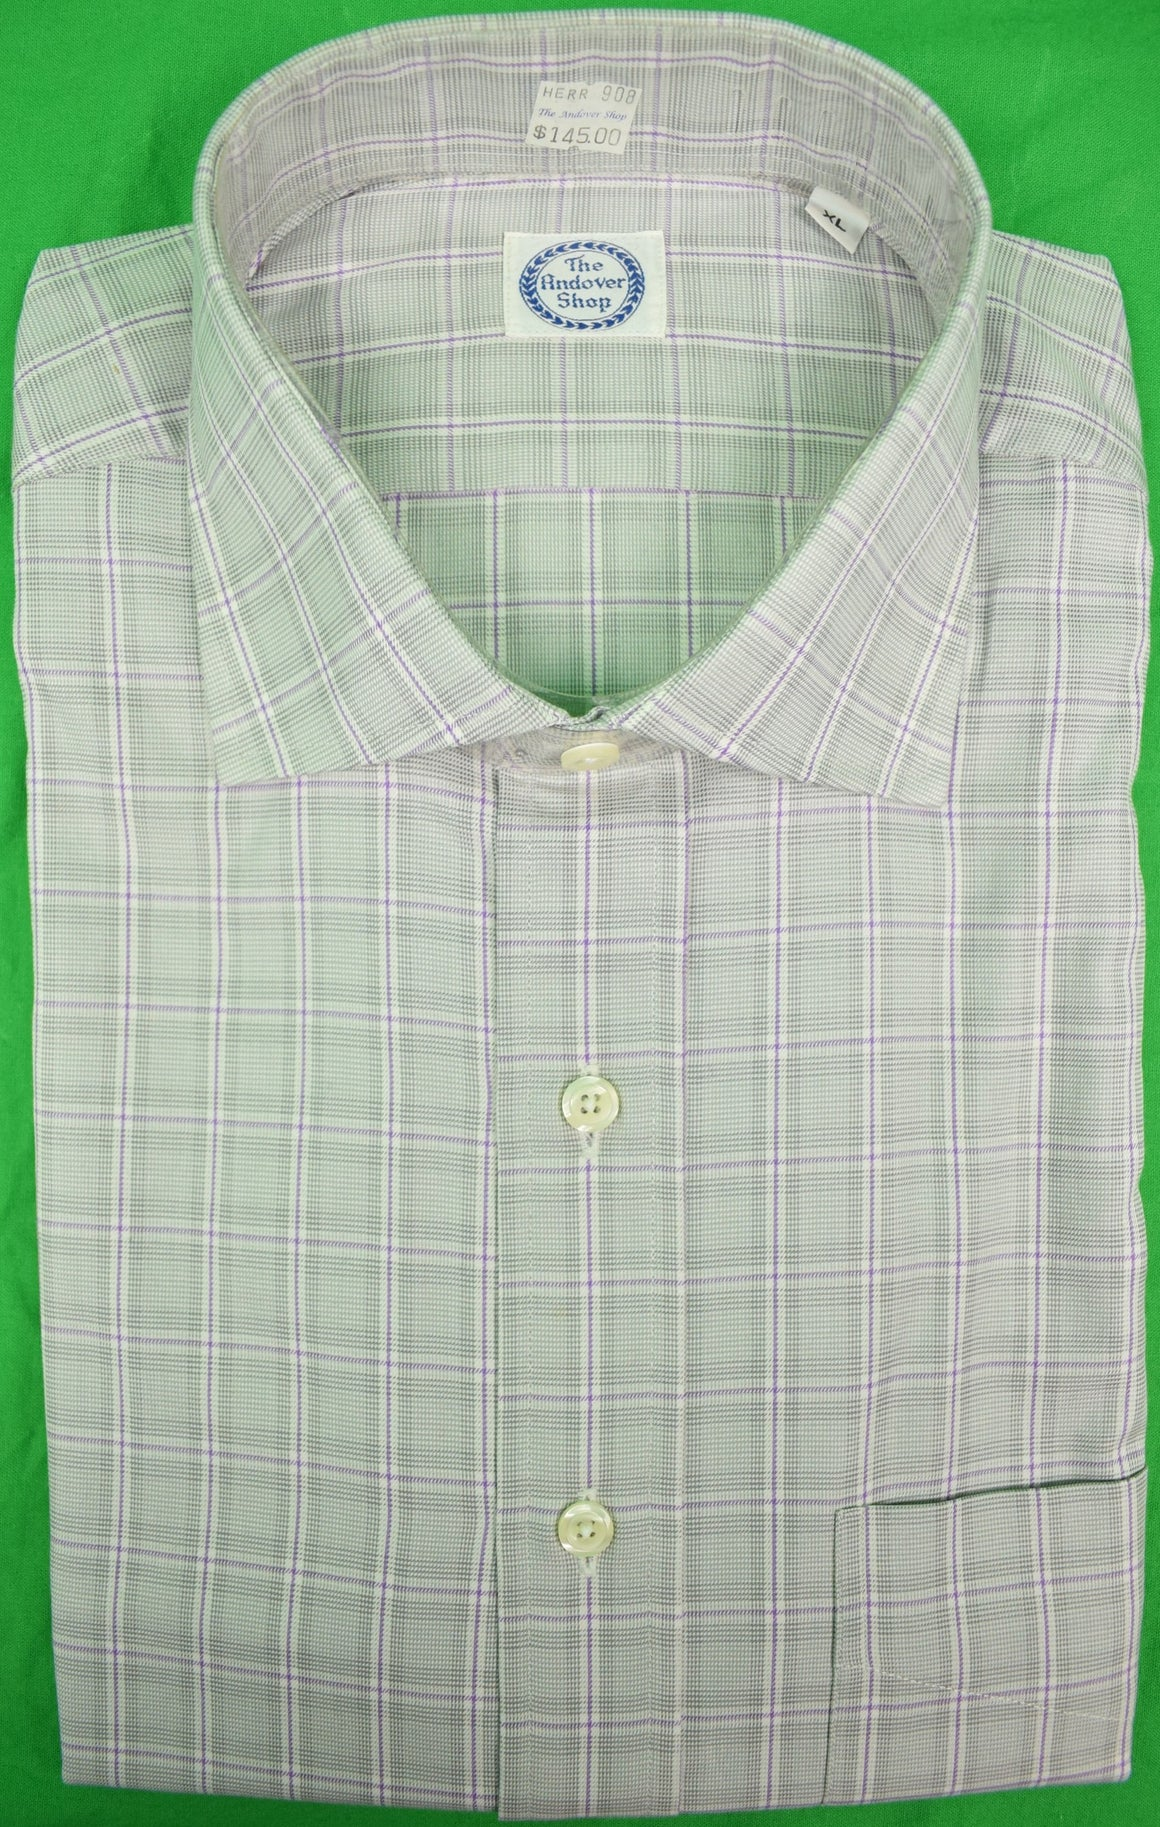 The Andover Shop Brush Cotton Glen Plaid Sport Shirt w/ Spread Collar Sz: XL (New w/ Tag!)